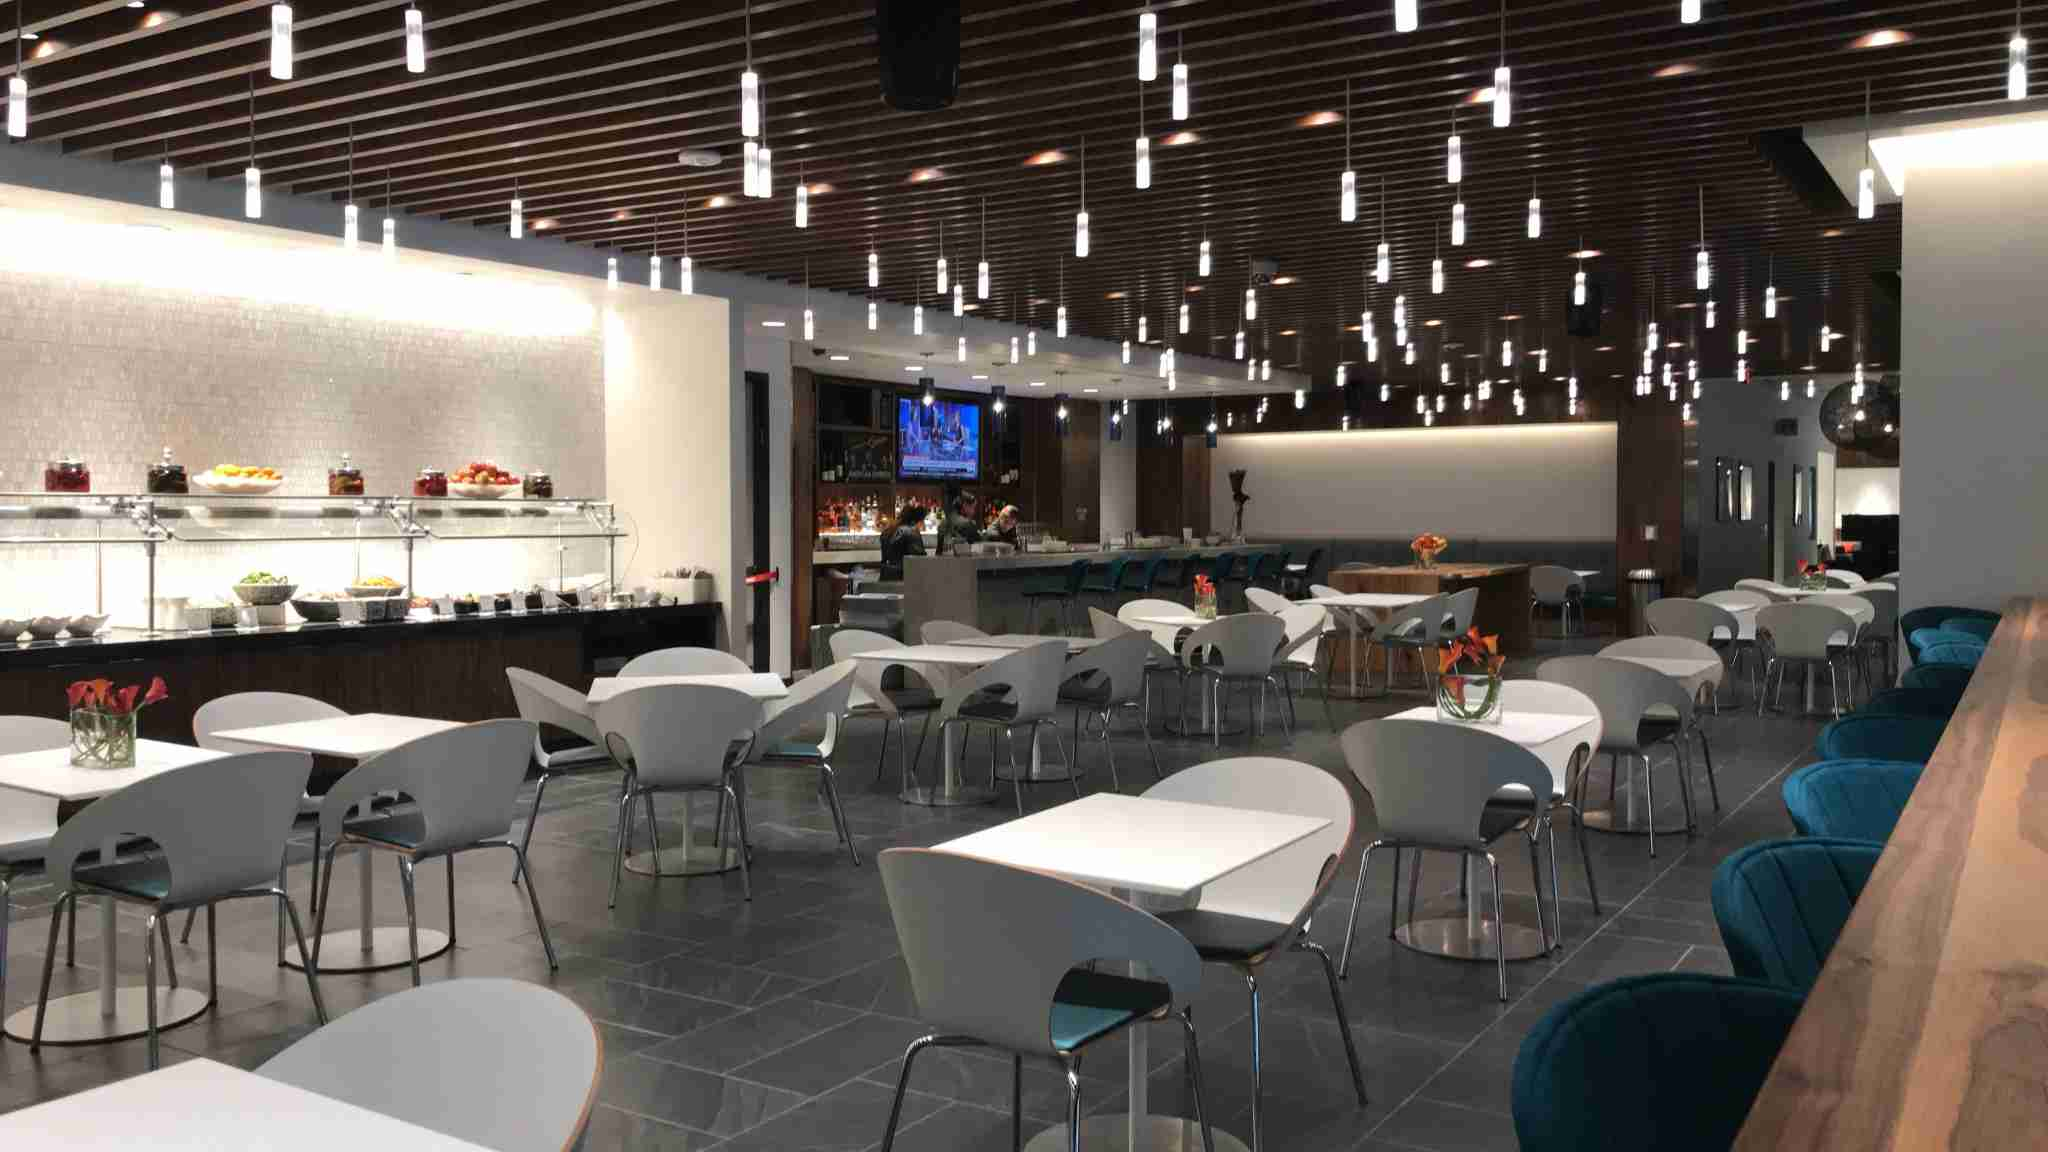 The dining area in the Dallas Centurion Lounge. (Photo by Katherine Fan/The Points Guy)